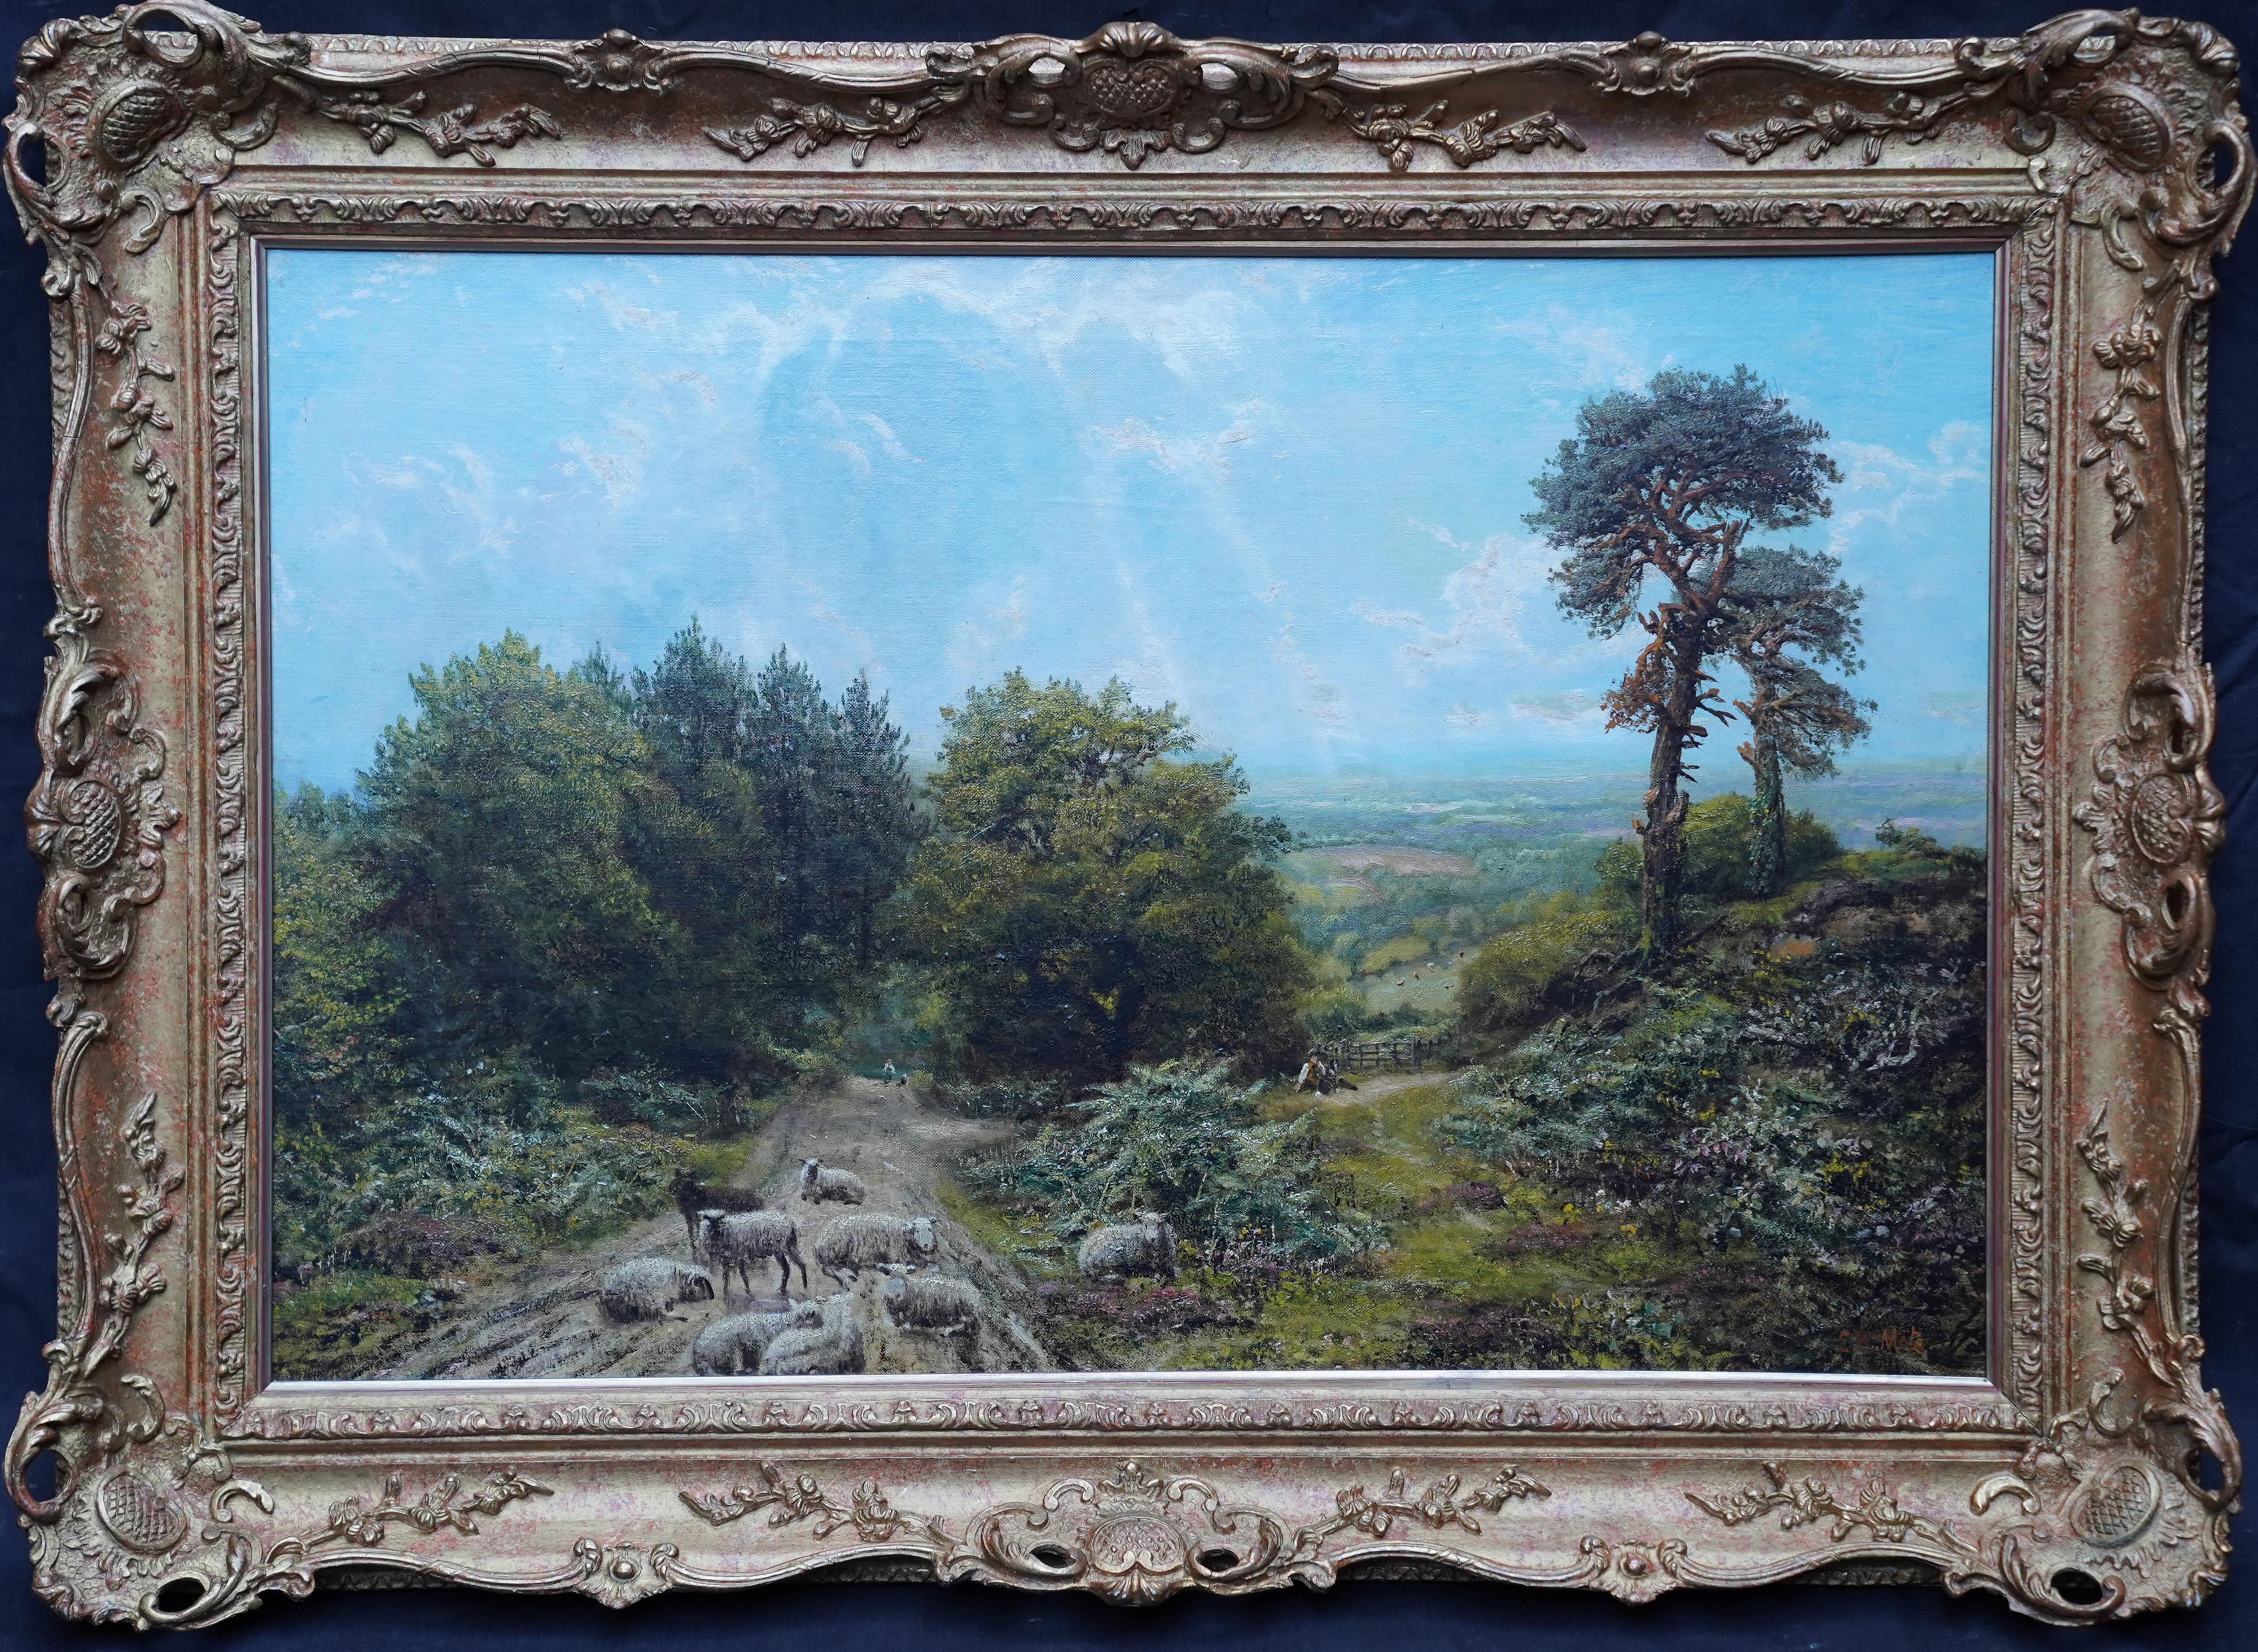 Sheep in a Surrey Landscape - British Victorian art sunny landscape oil painting